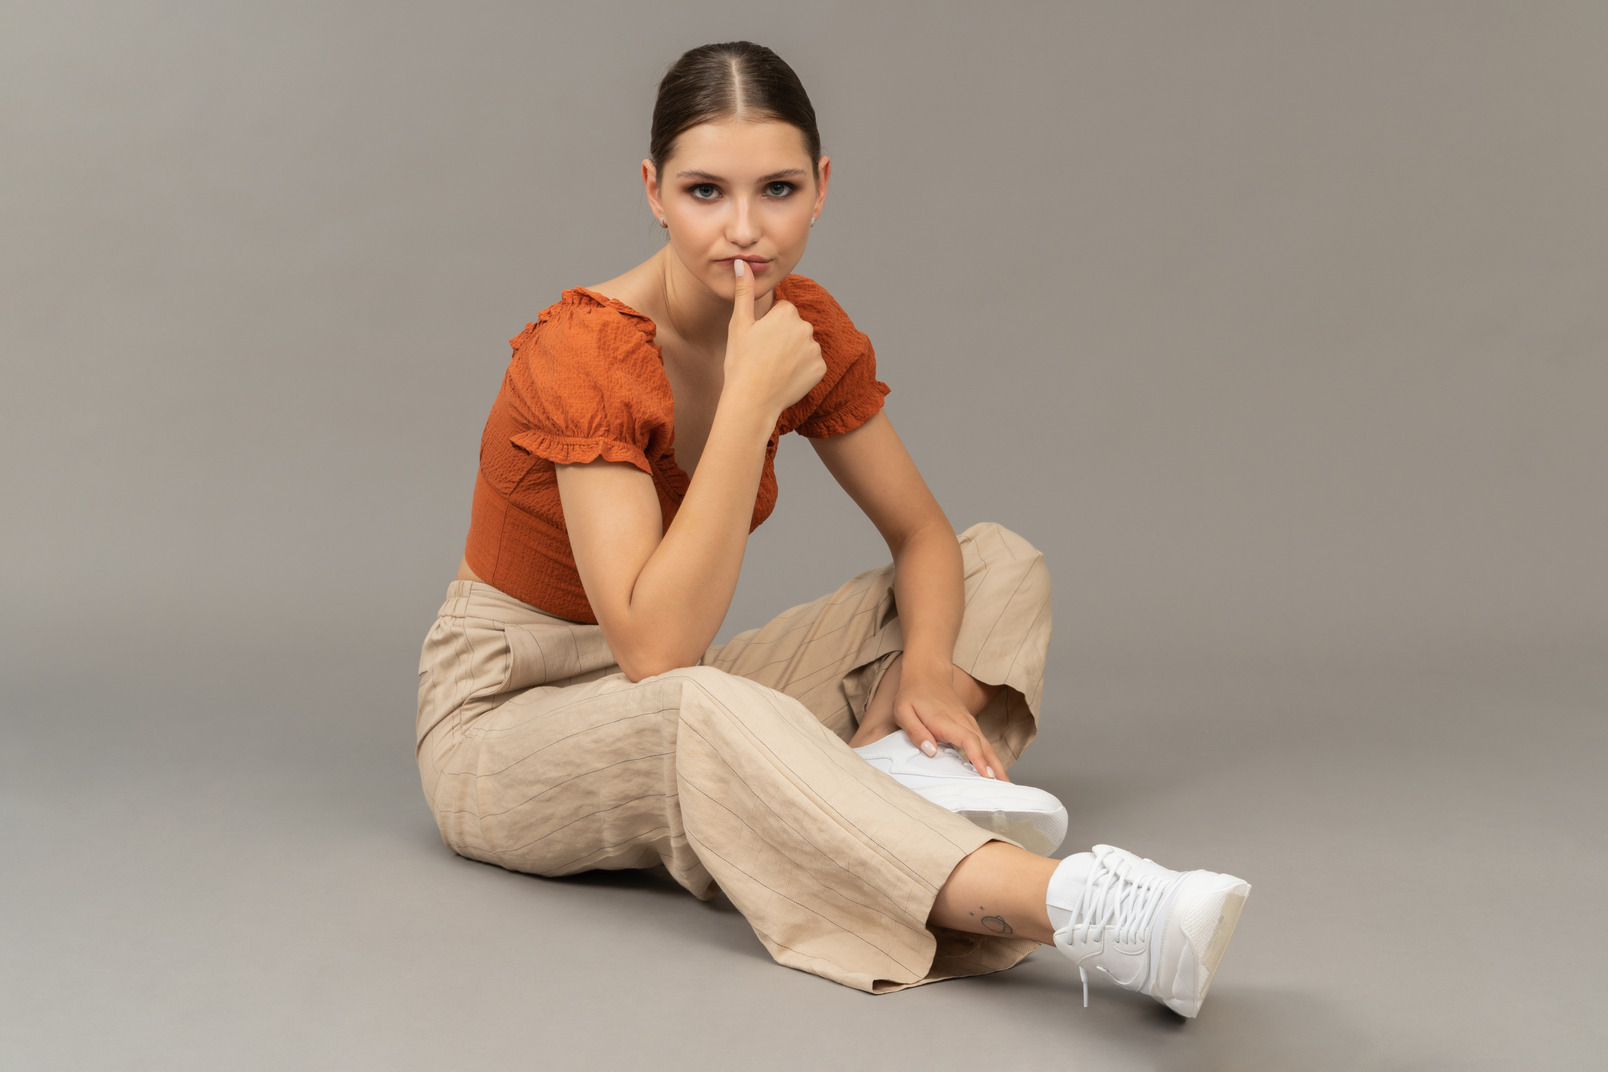 Young woman sits while thinking